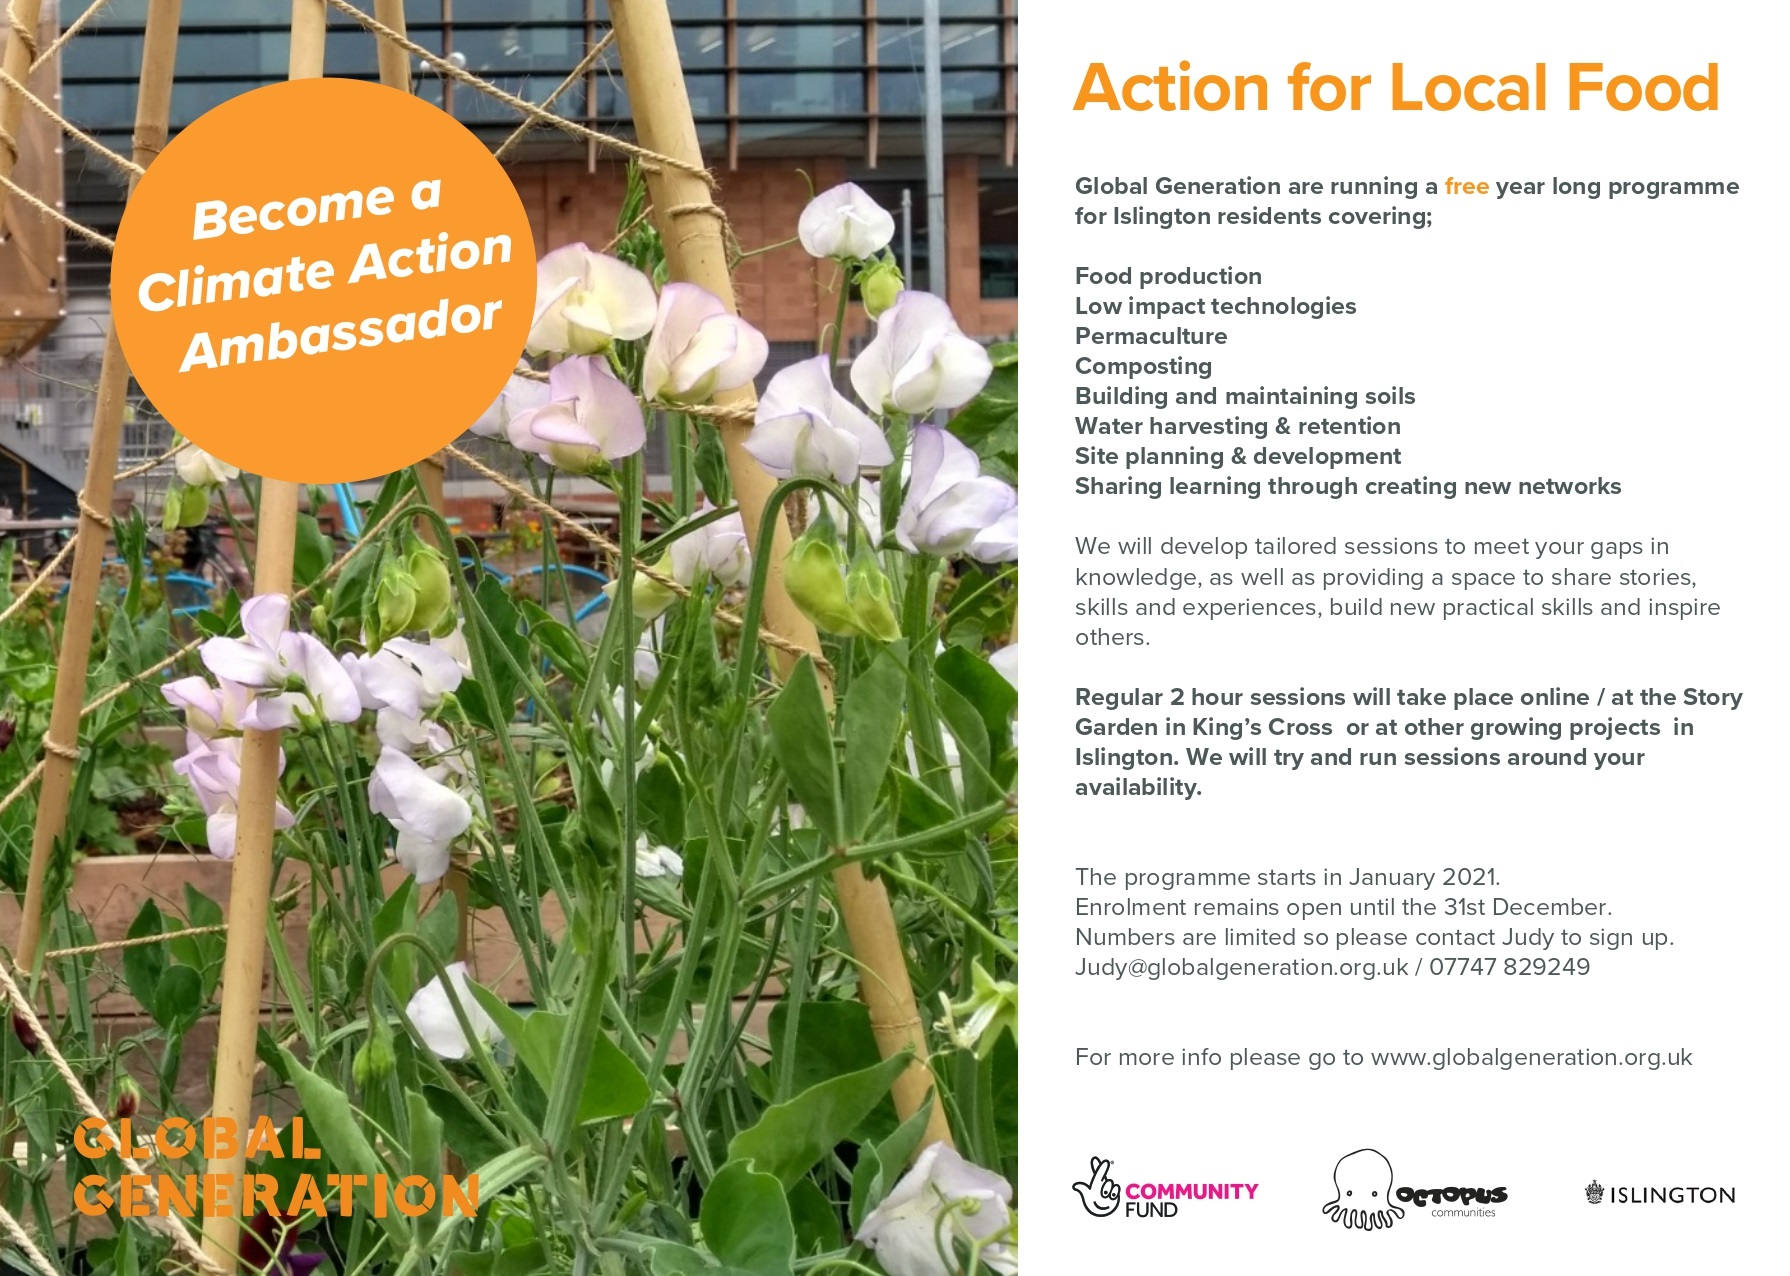 Action for Local Food Ambassador flyer_page-0001